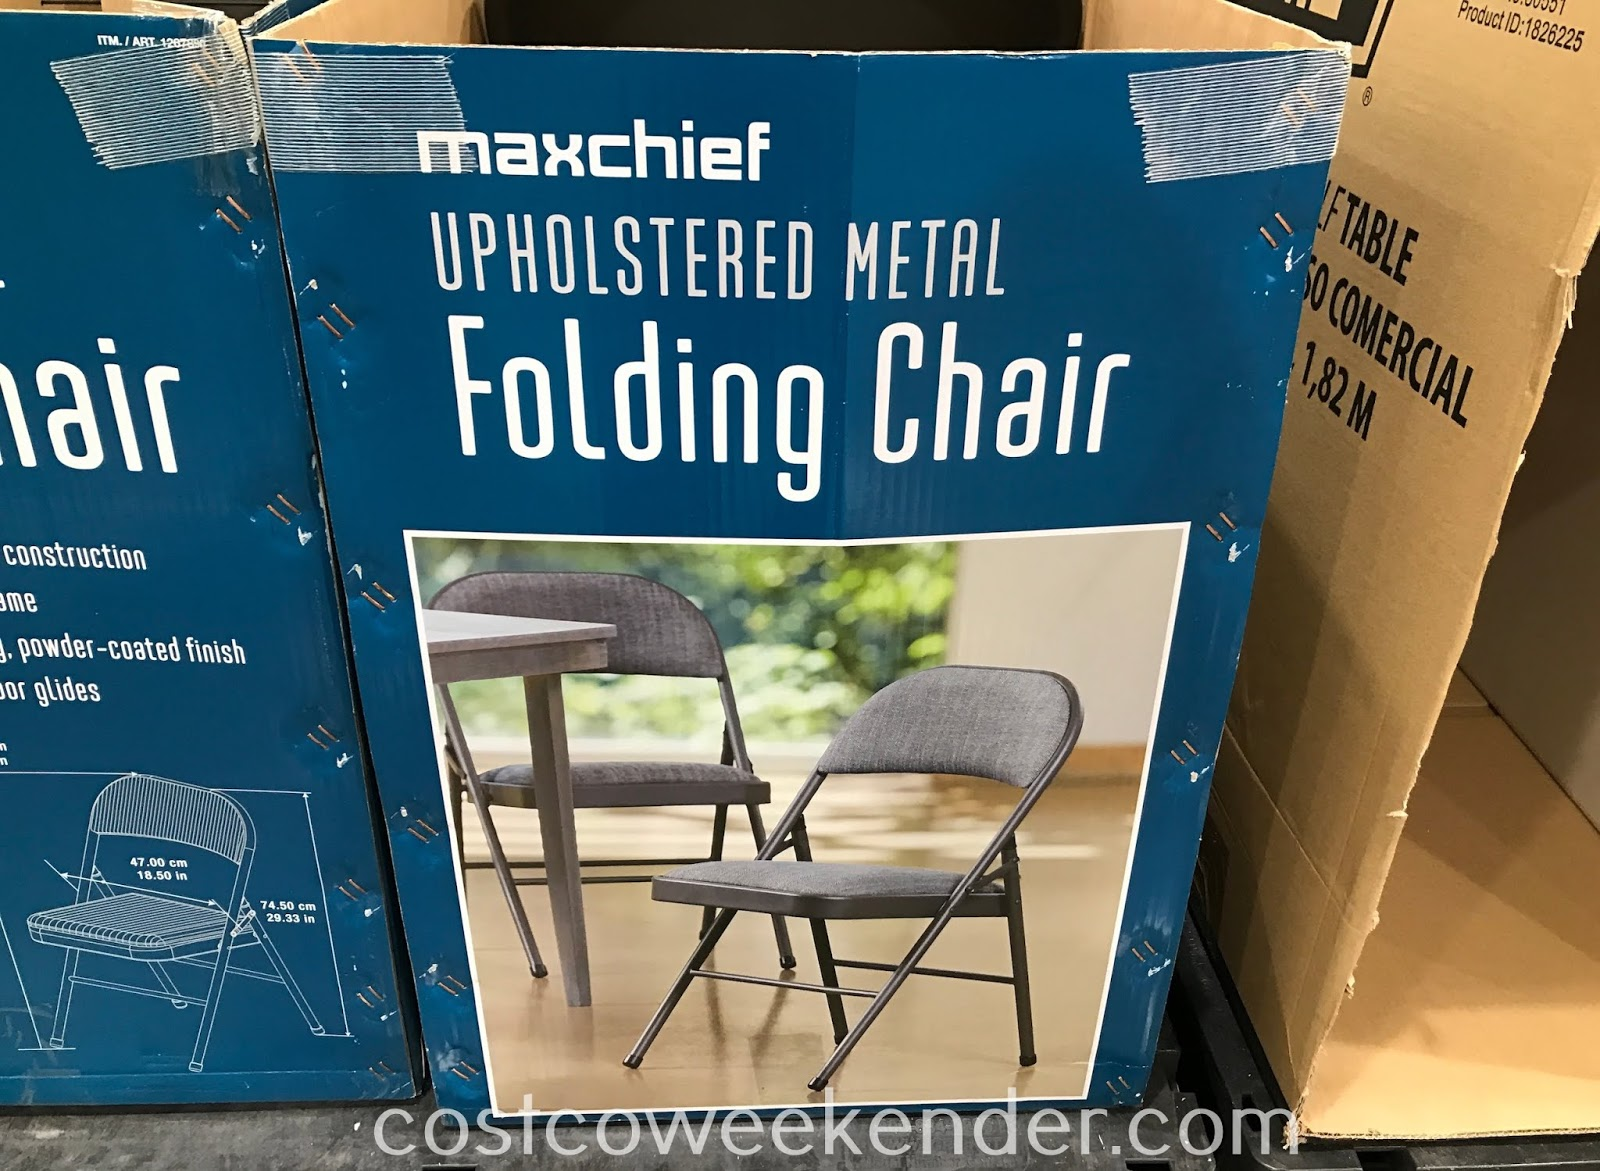 Costco 1267890 - Maxchief Upholstered Metal Folding Chair: great for parties and get-togethers